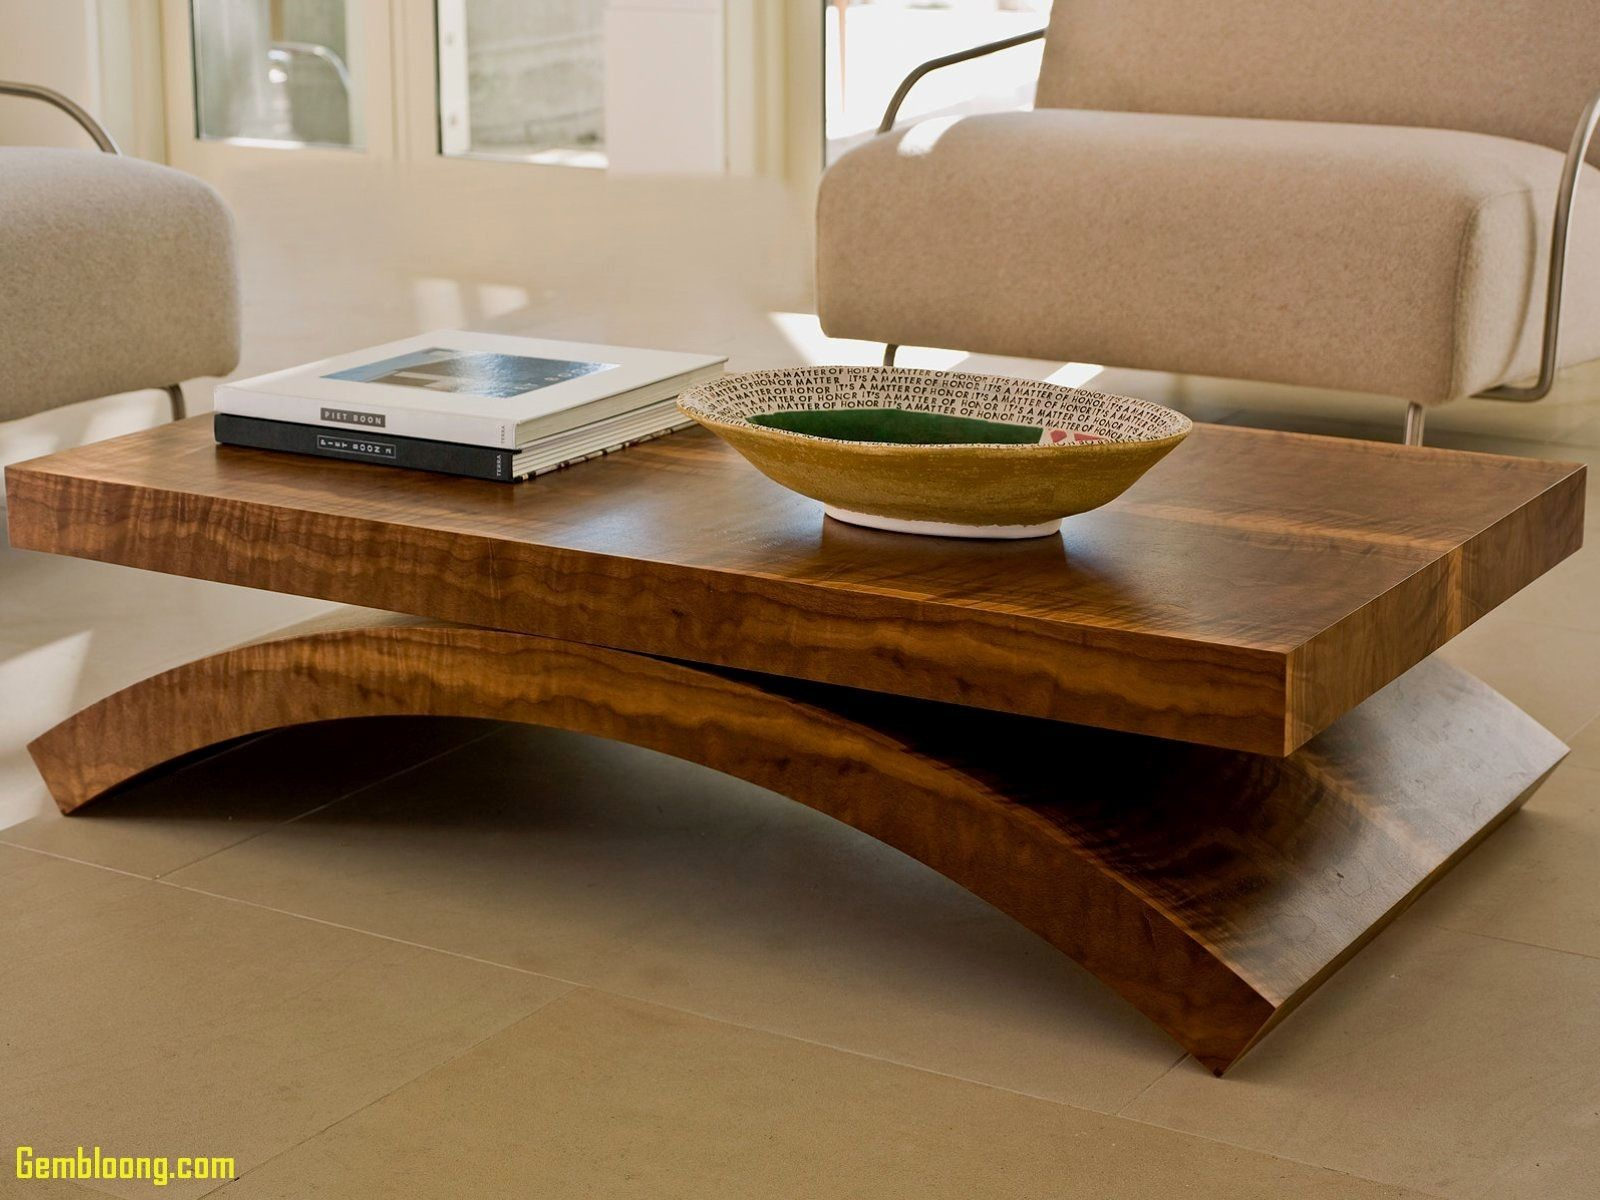 Elegant Center Tables For Living Room Inter Institutional Table